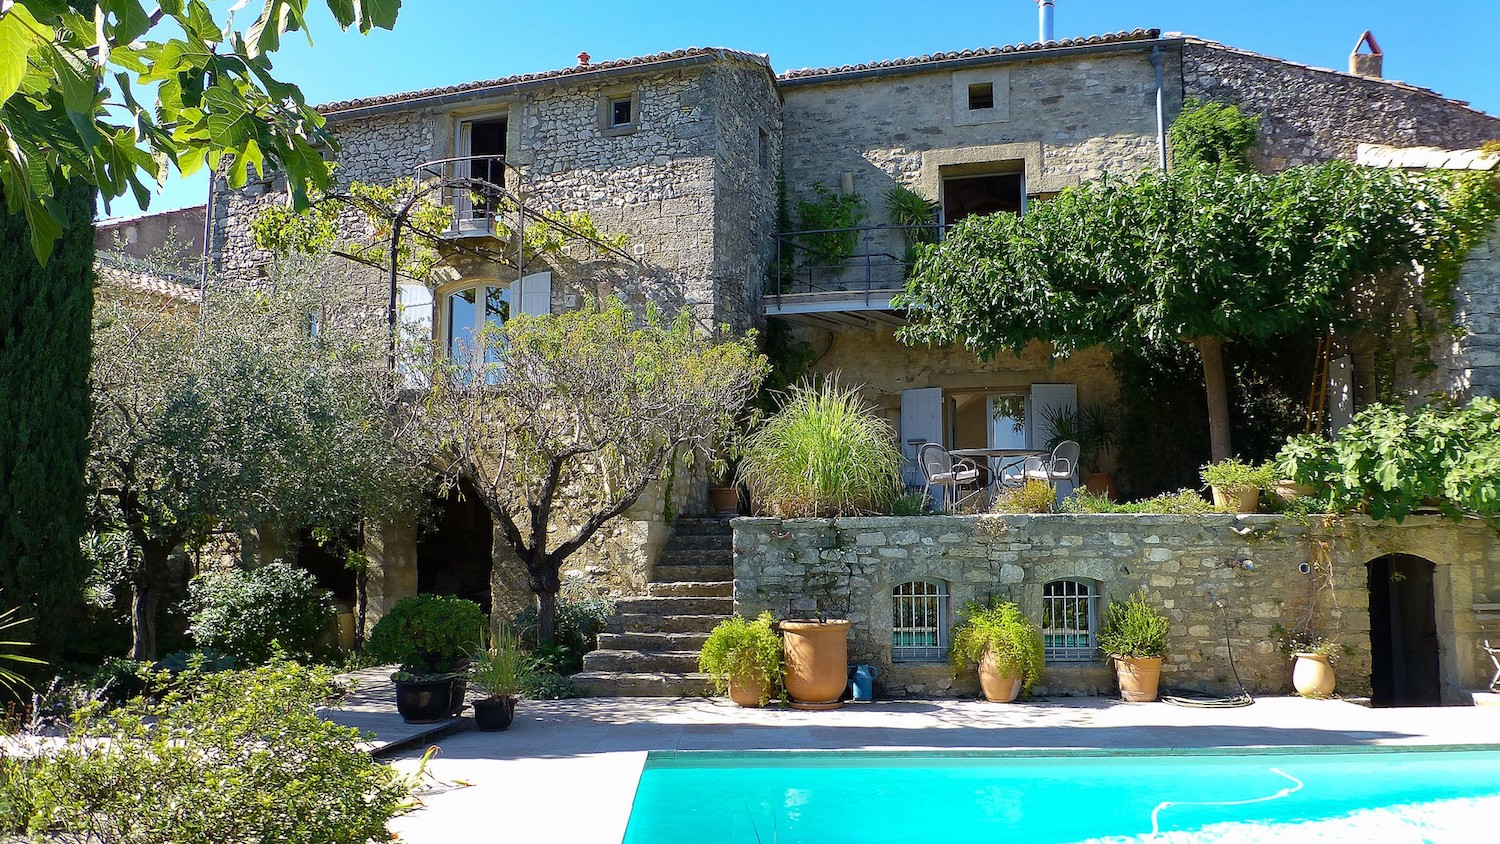 2185 : UZES region, breathtaking views, charming property 10 minutes from Uzès with independent guest flat